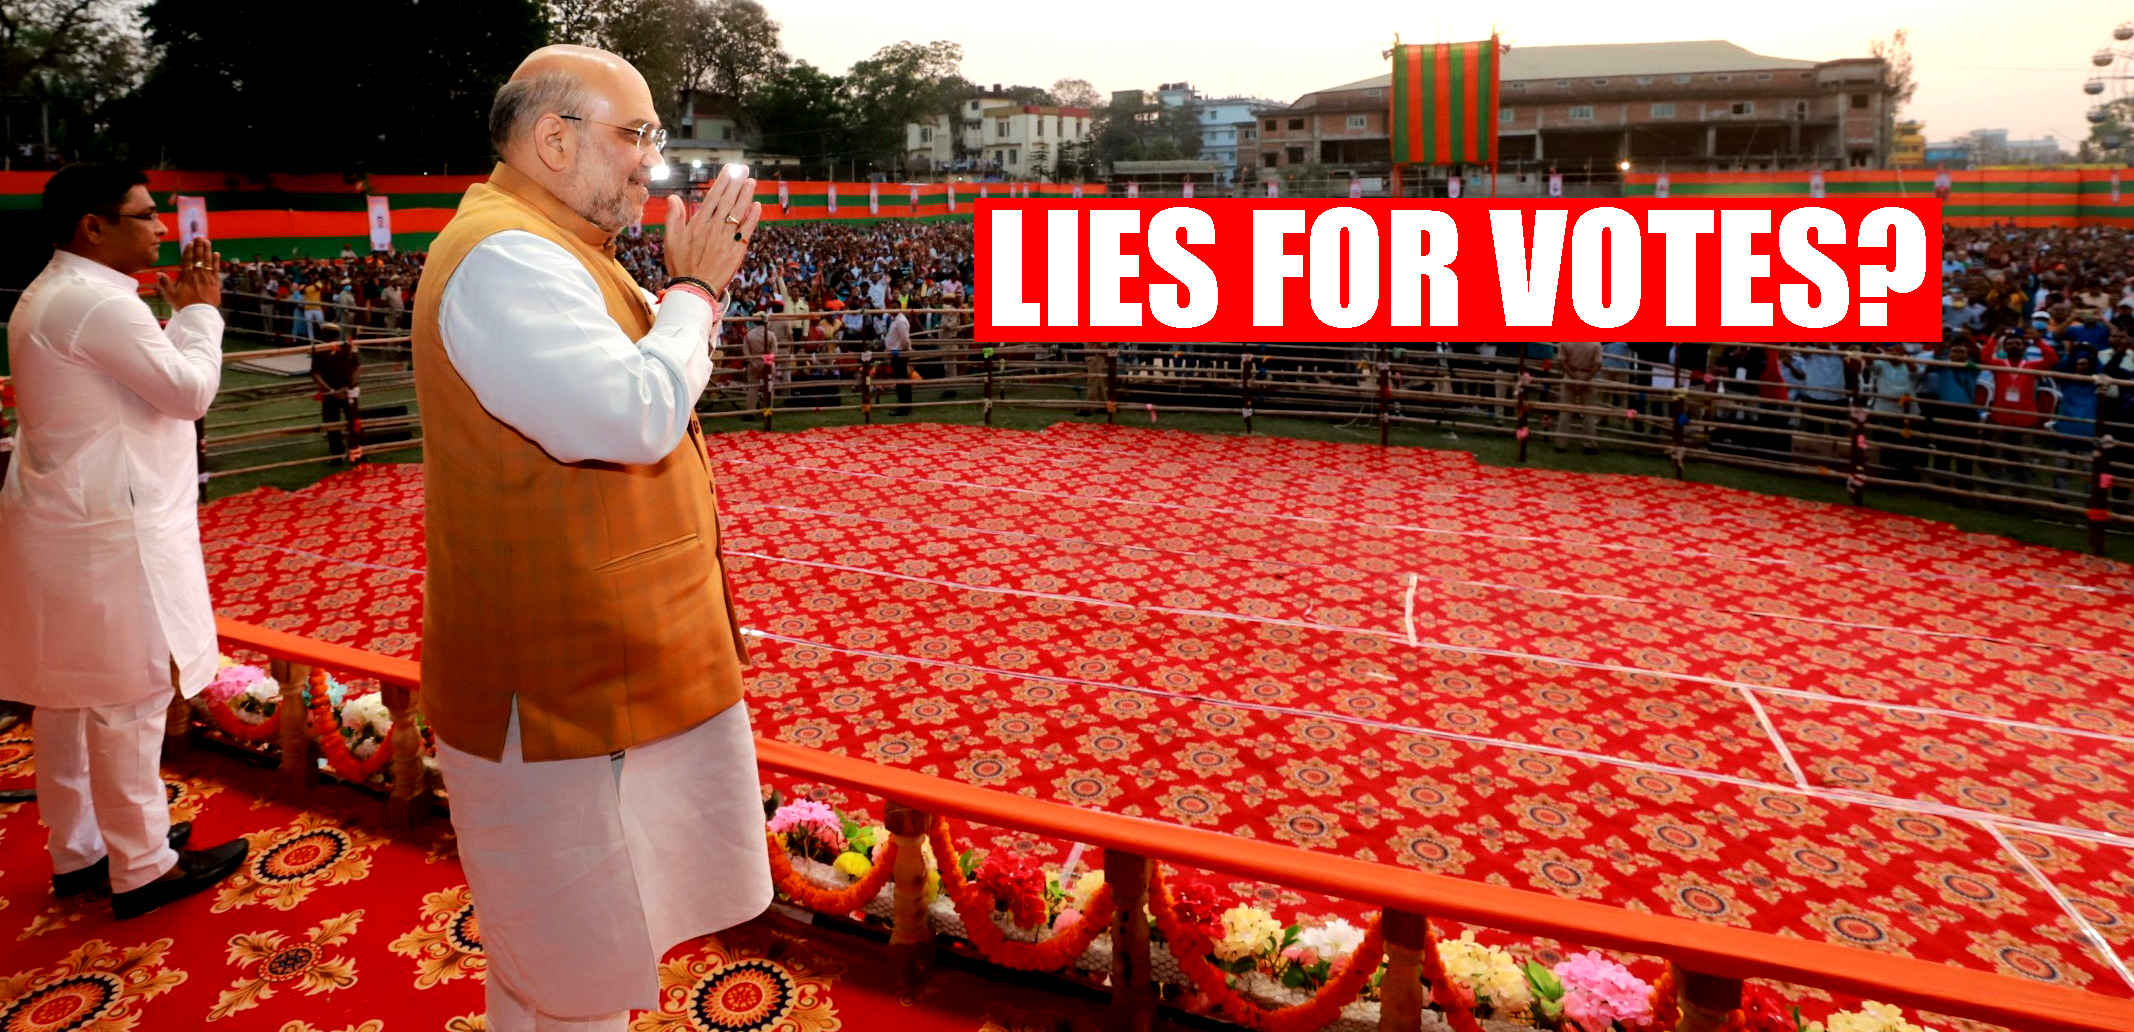 Assam Assembly elections: BJP's avalanche of lies, lies for votes 3